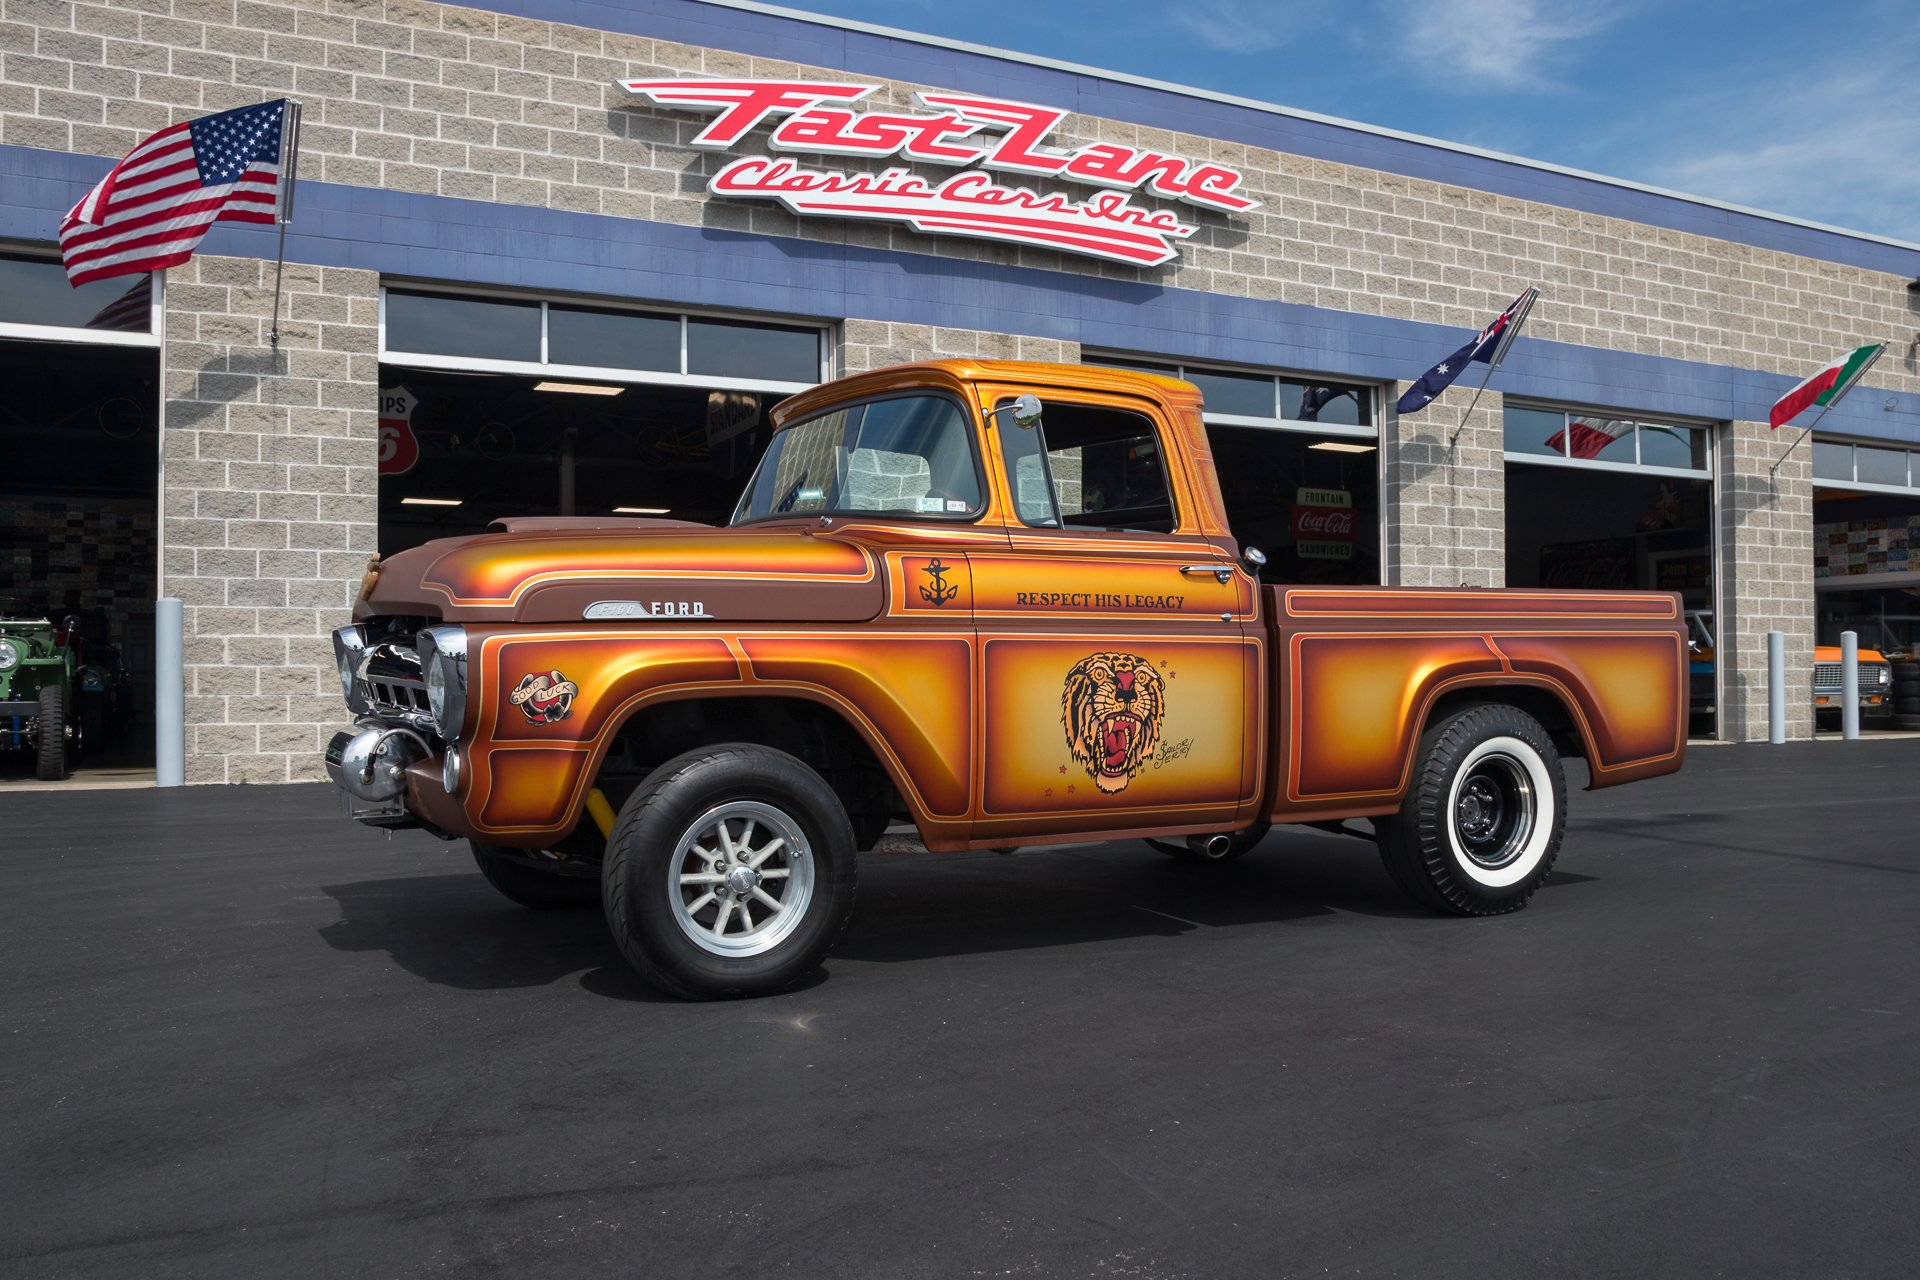 1957 ford f100 for sale 170652 motorious1957 ford f100 for sale